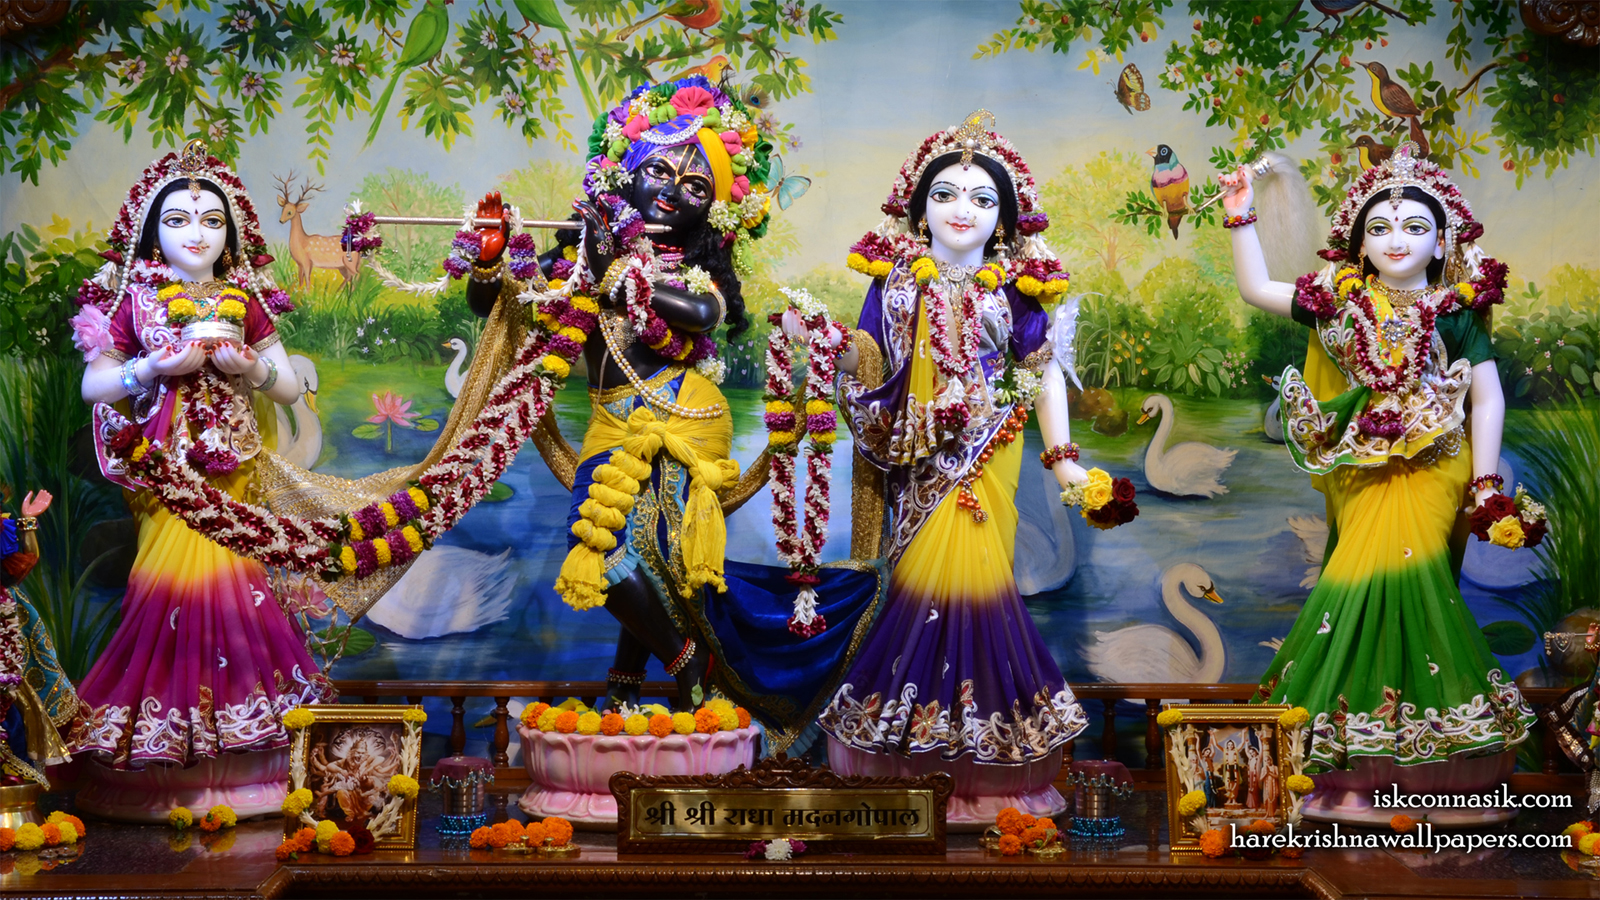 Sri Sri Radha Madan Gopal Lalita Vishakha Wallpaper (001) Size 1600x900 Download